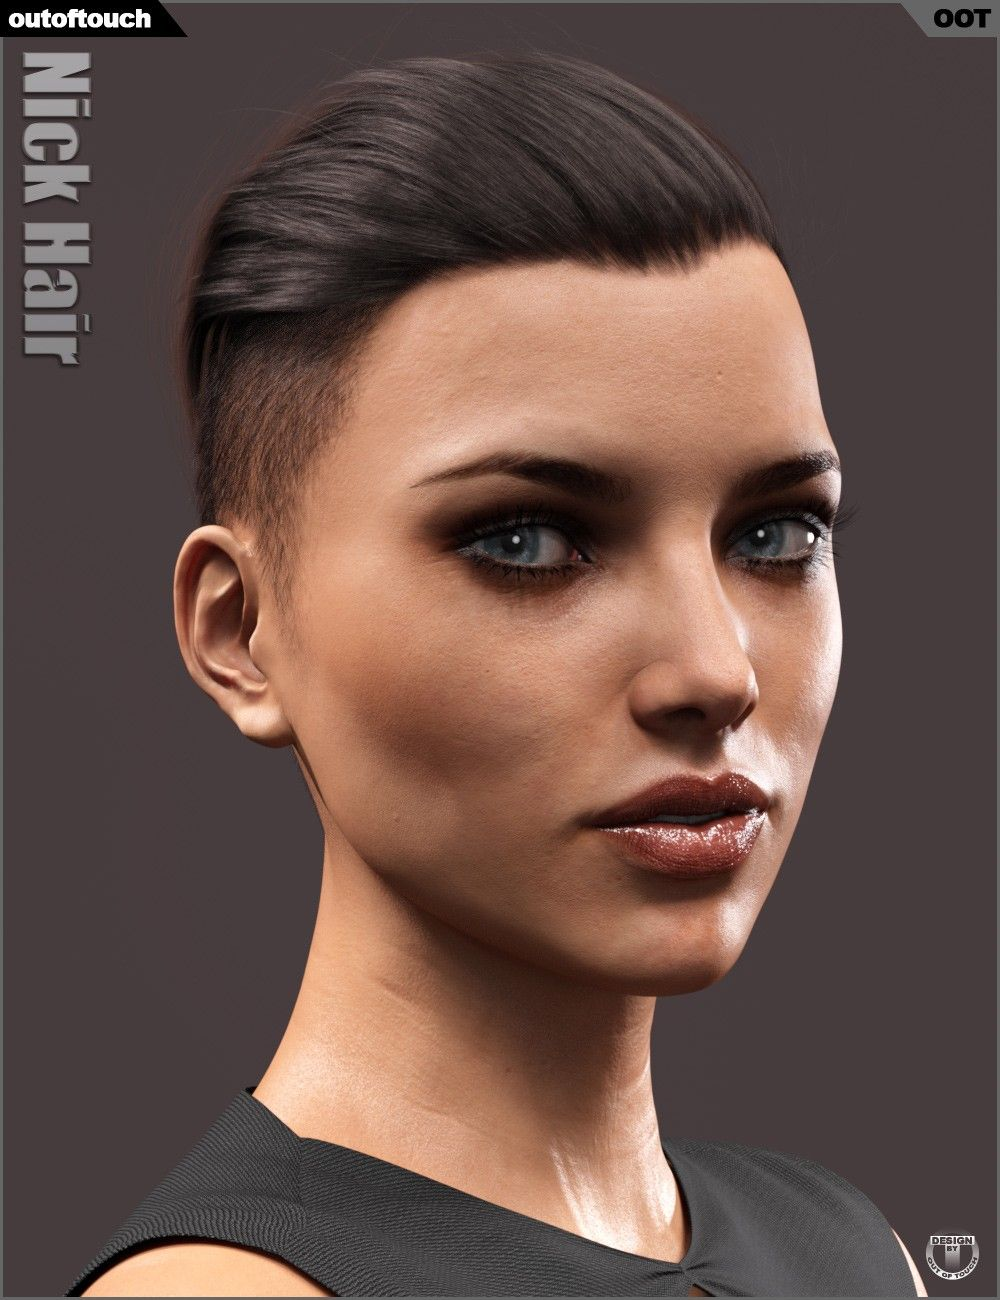 Nick Hair For Genesis 3 And 8 3d Models And 3d Software By Daz 3d